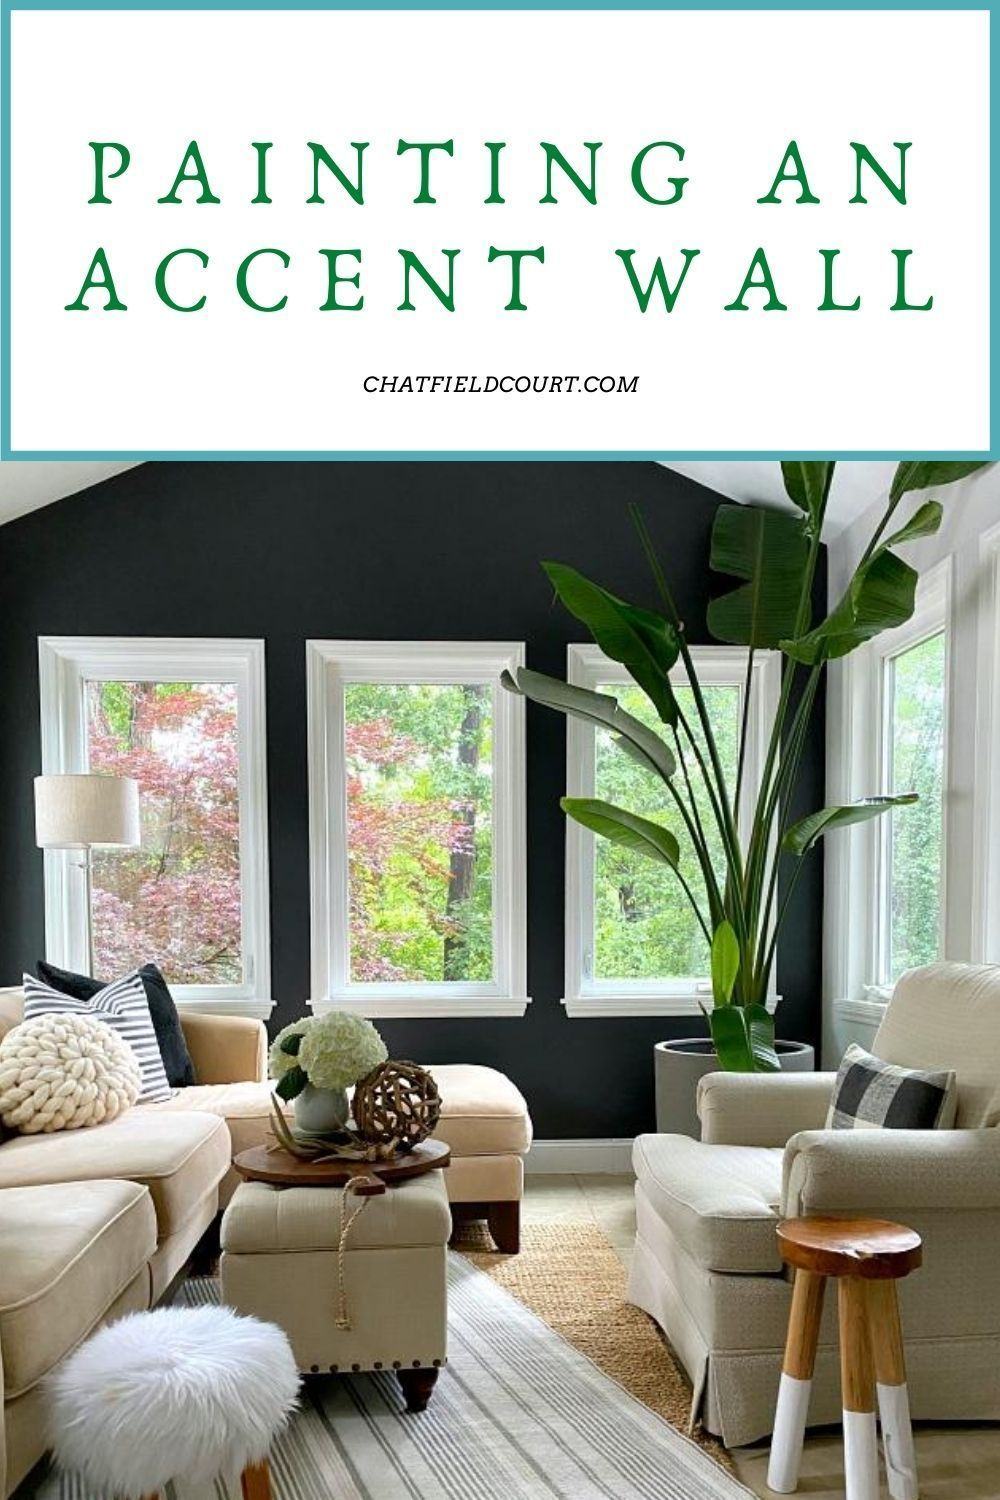 Painting An Accent Wall In The Sunroom Chatfield Court In 2020 Accent Wall Paint Accent Wall Small Sunroom